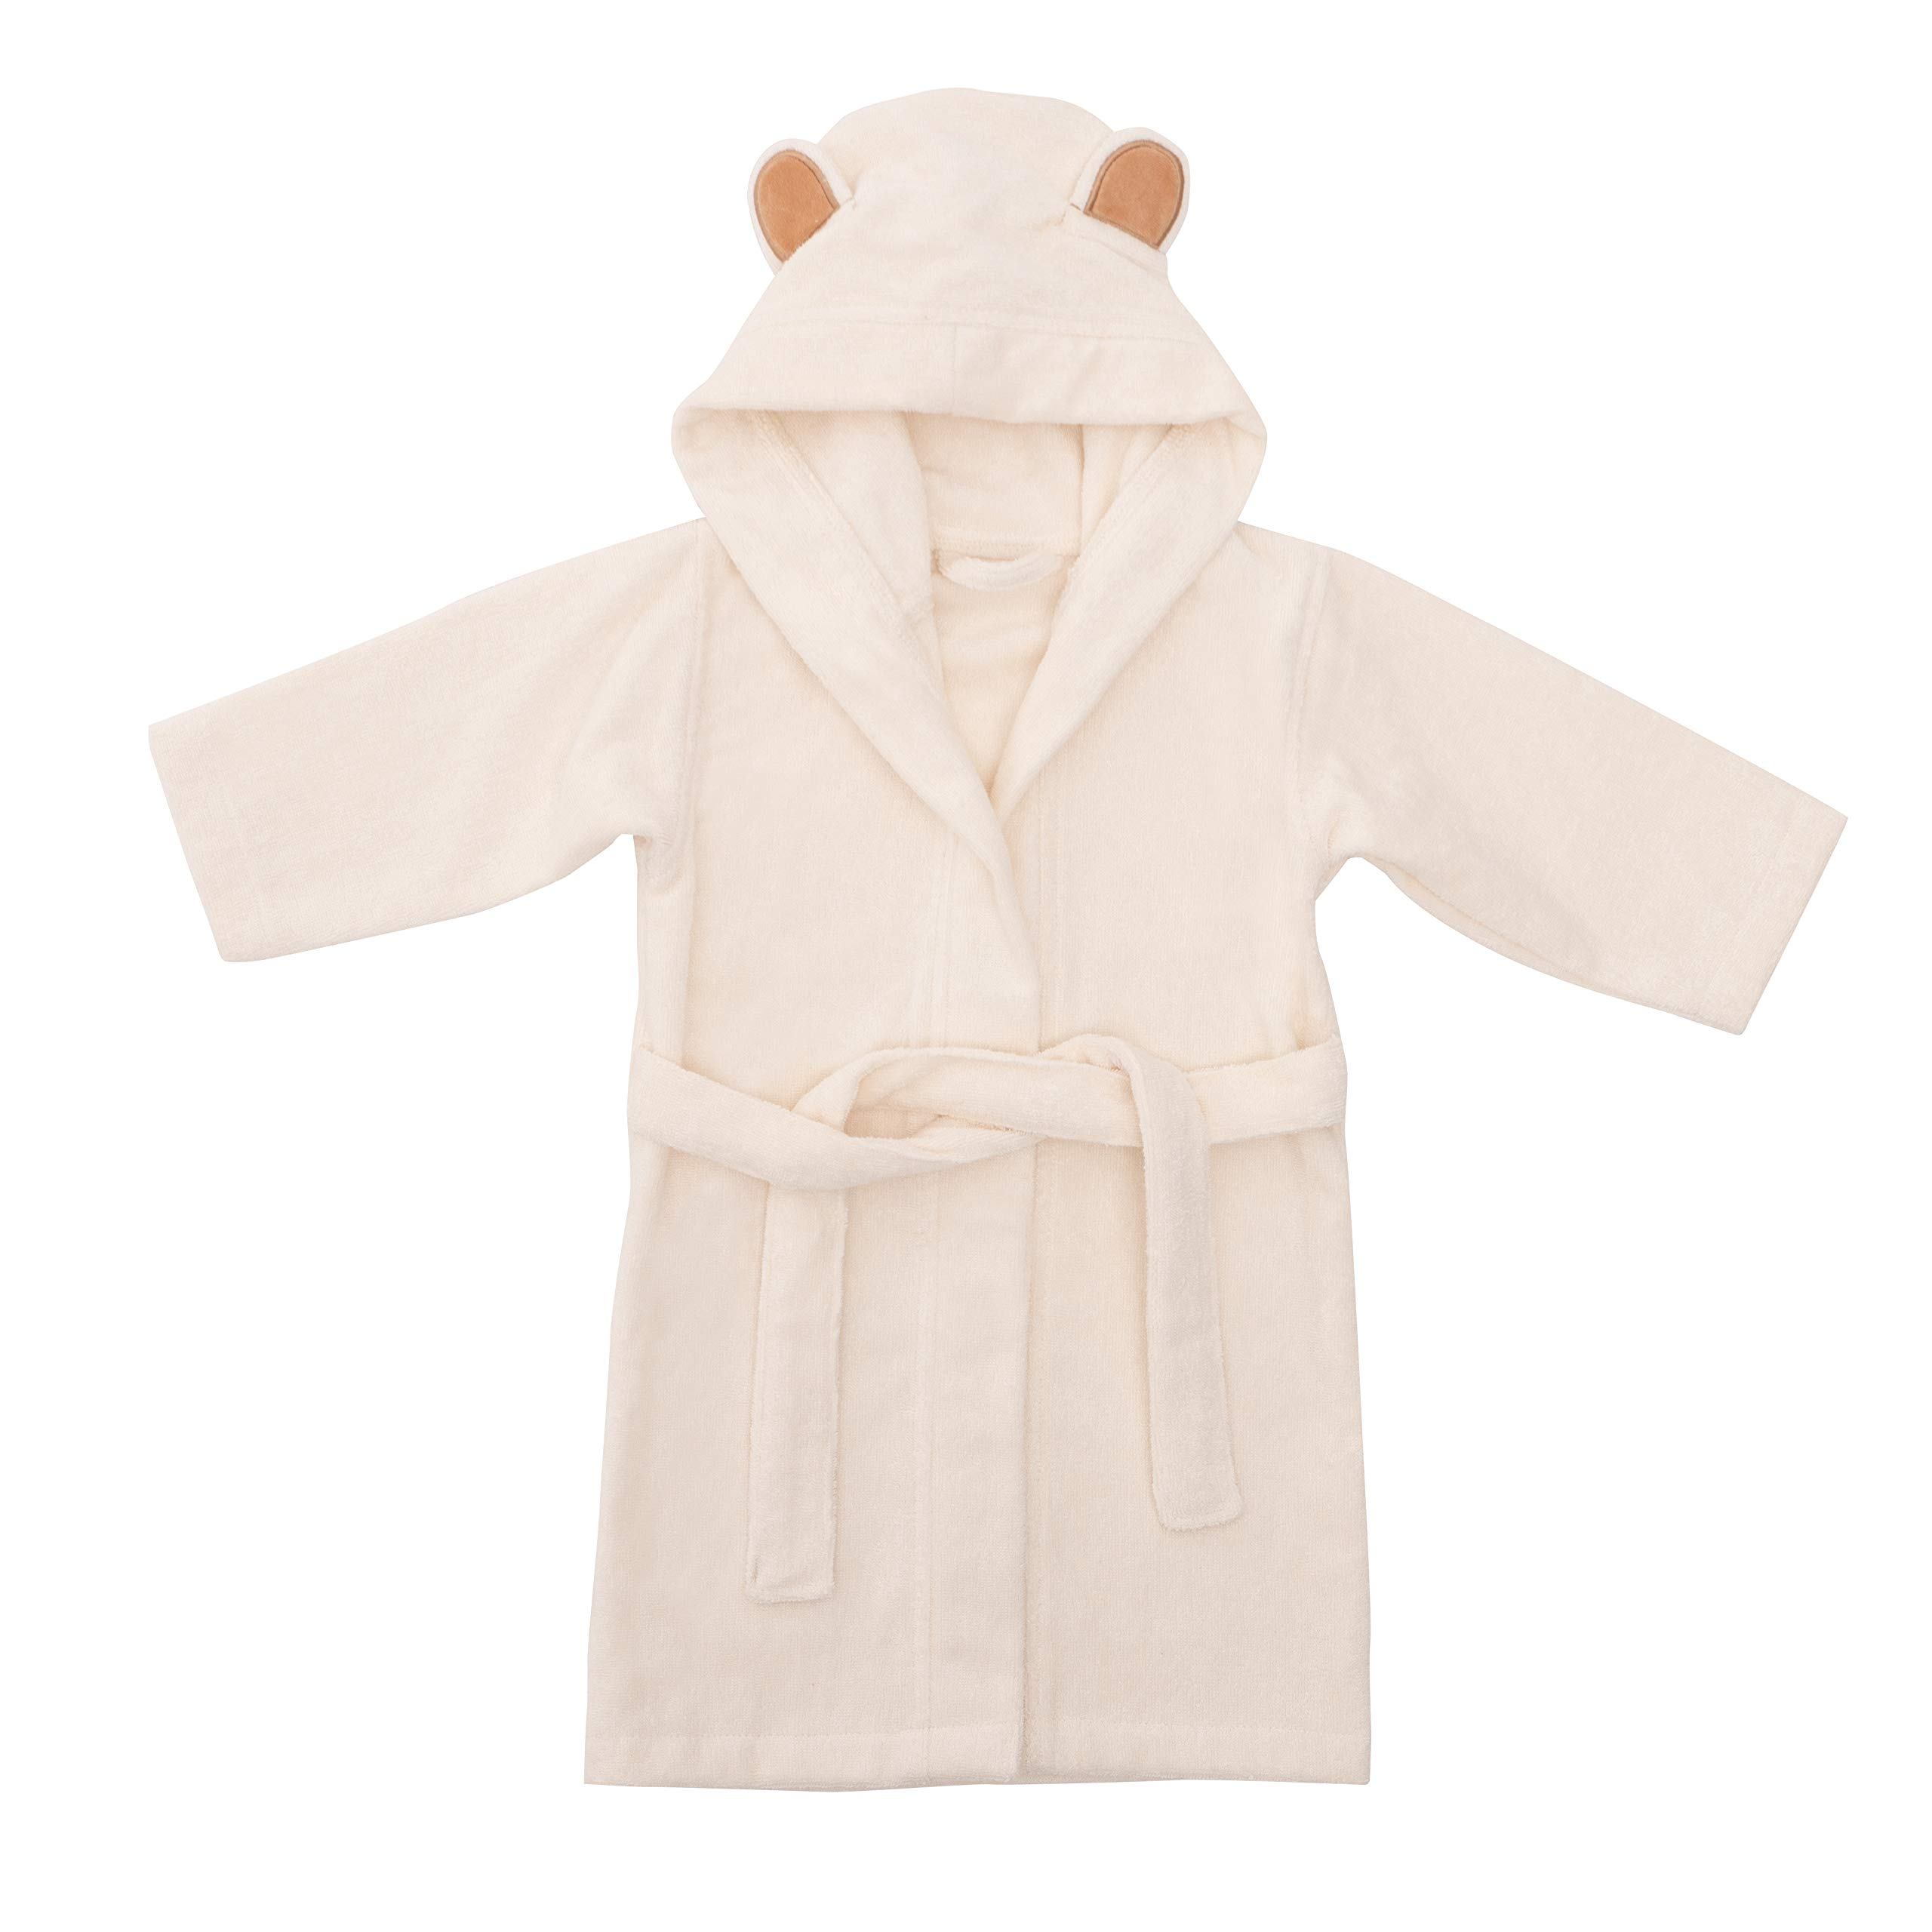 Natemia Ultra Soft Hooded Bathrobe for Babies and Toddlers - Highly Absorbent Rayon from Bamboo Robe for Kids 4-5T